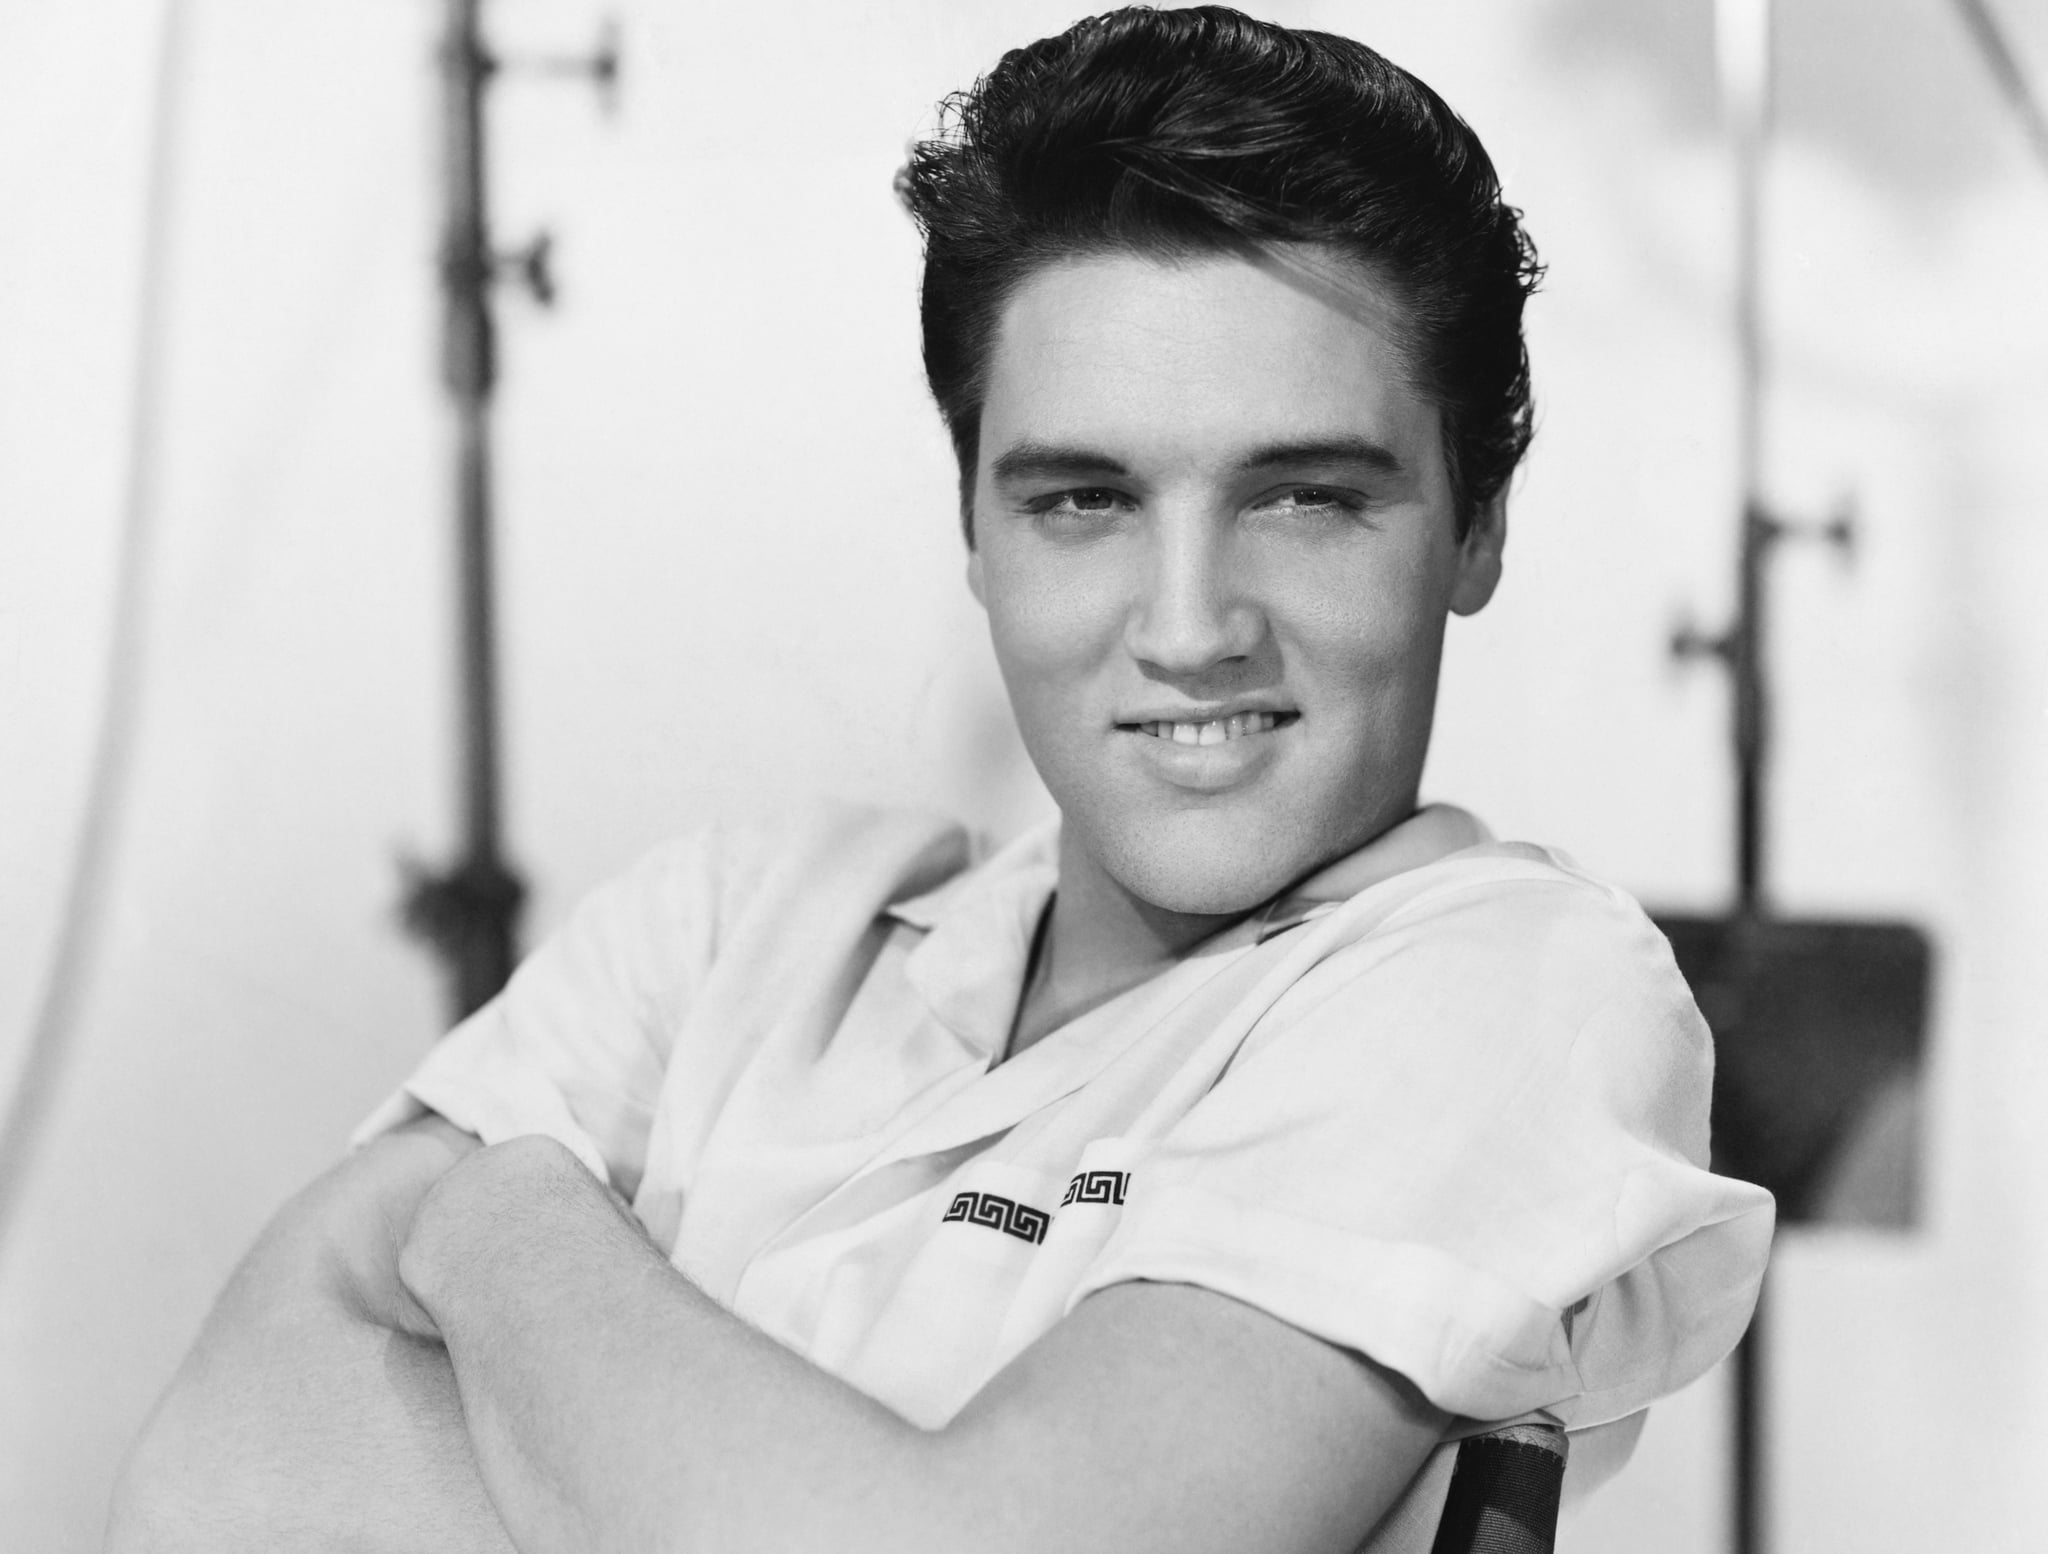 elvis | All the action from the casino floor: news, views and more